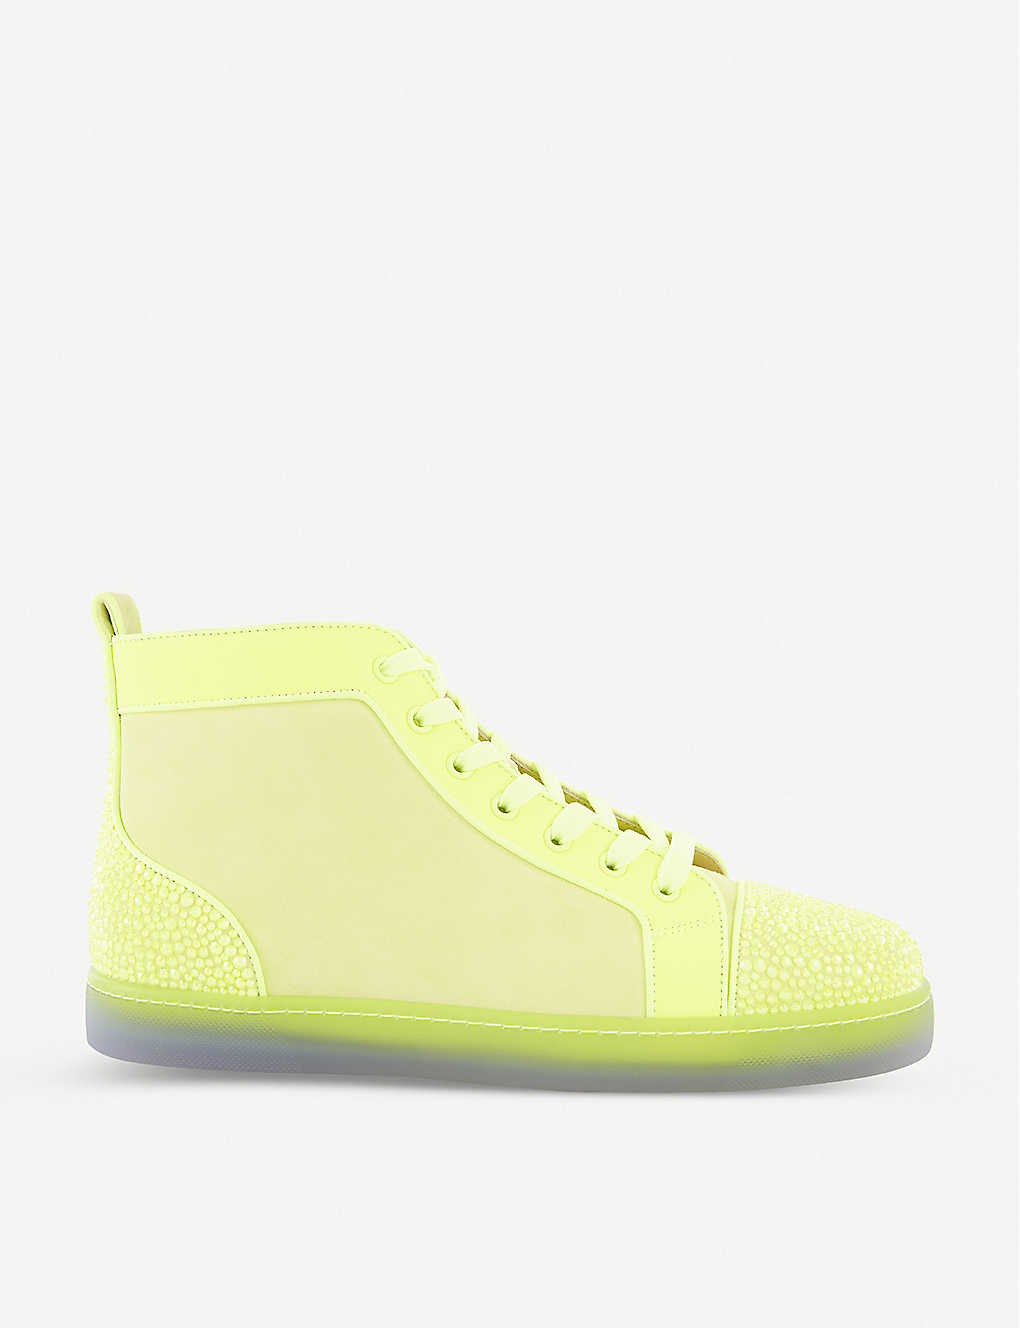 CHRISTIAN LOUBOUTIN: Louis P Strass II leather trainers